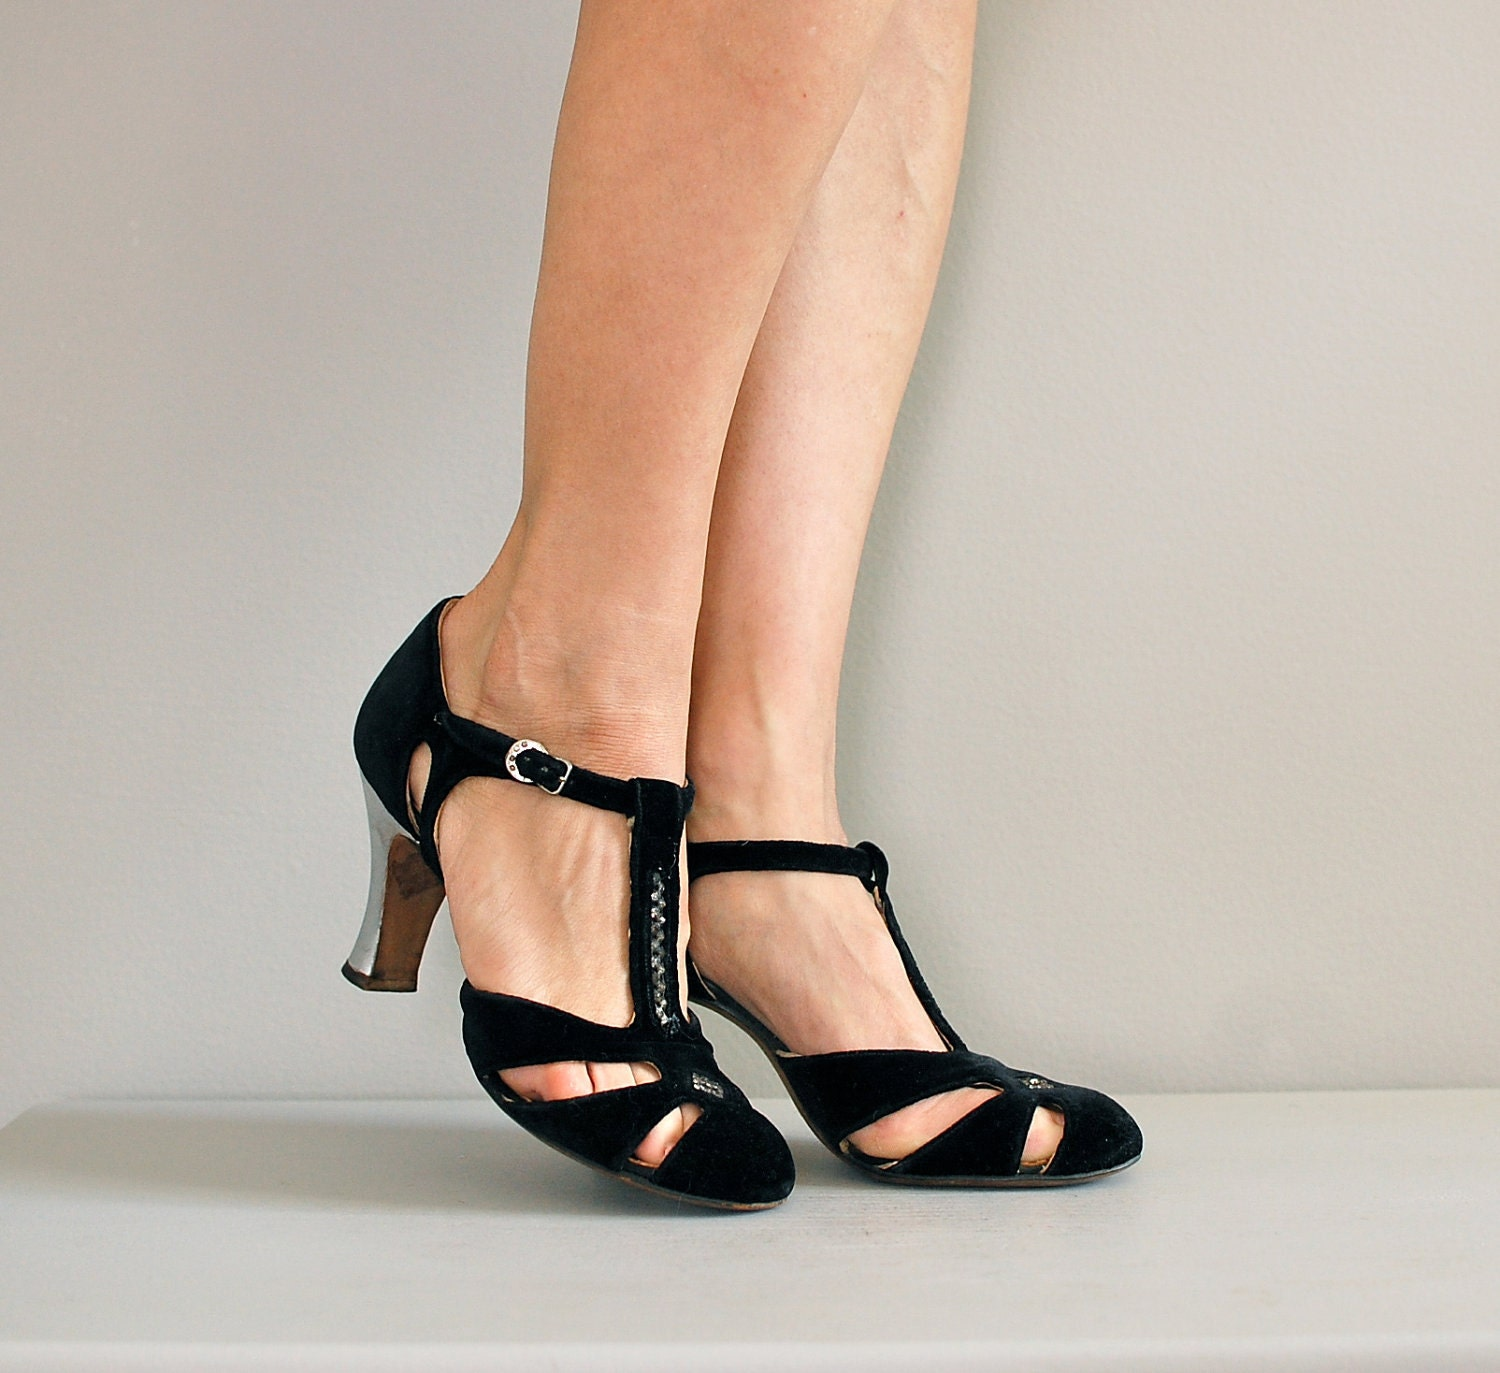 1920s shoes / flapper t-straps / Bright Young Things